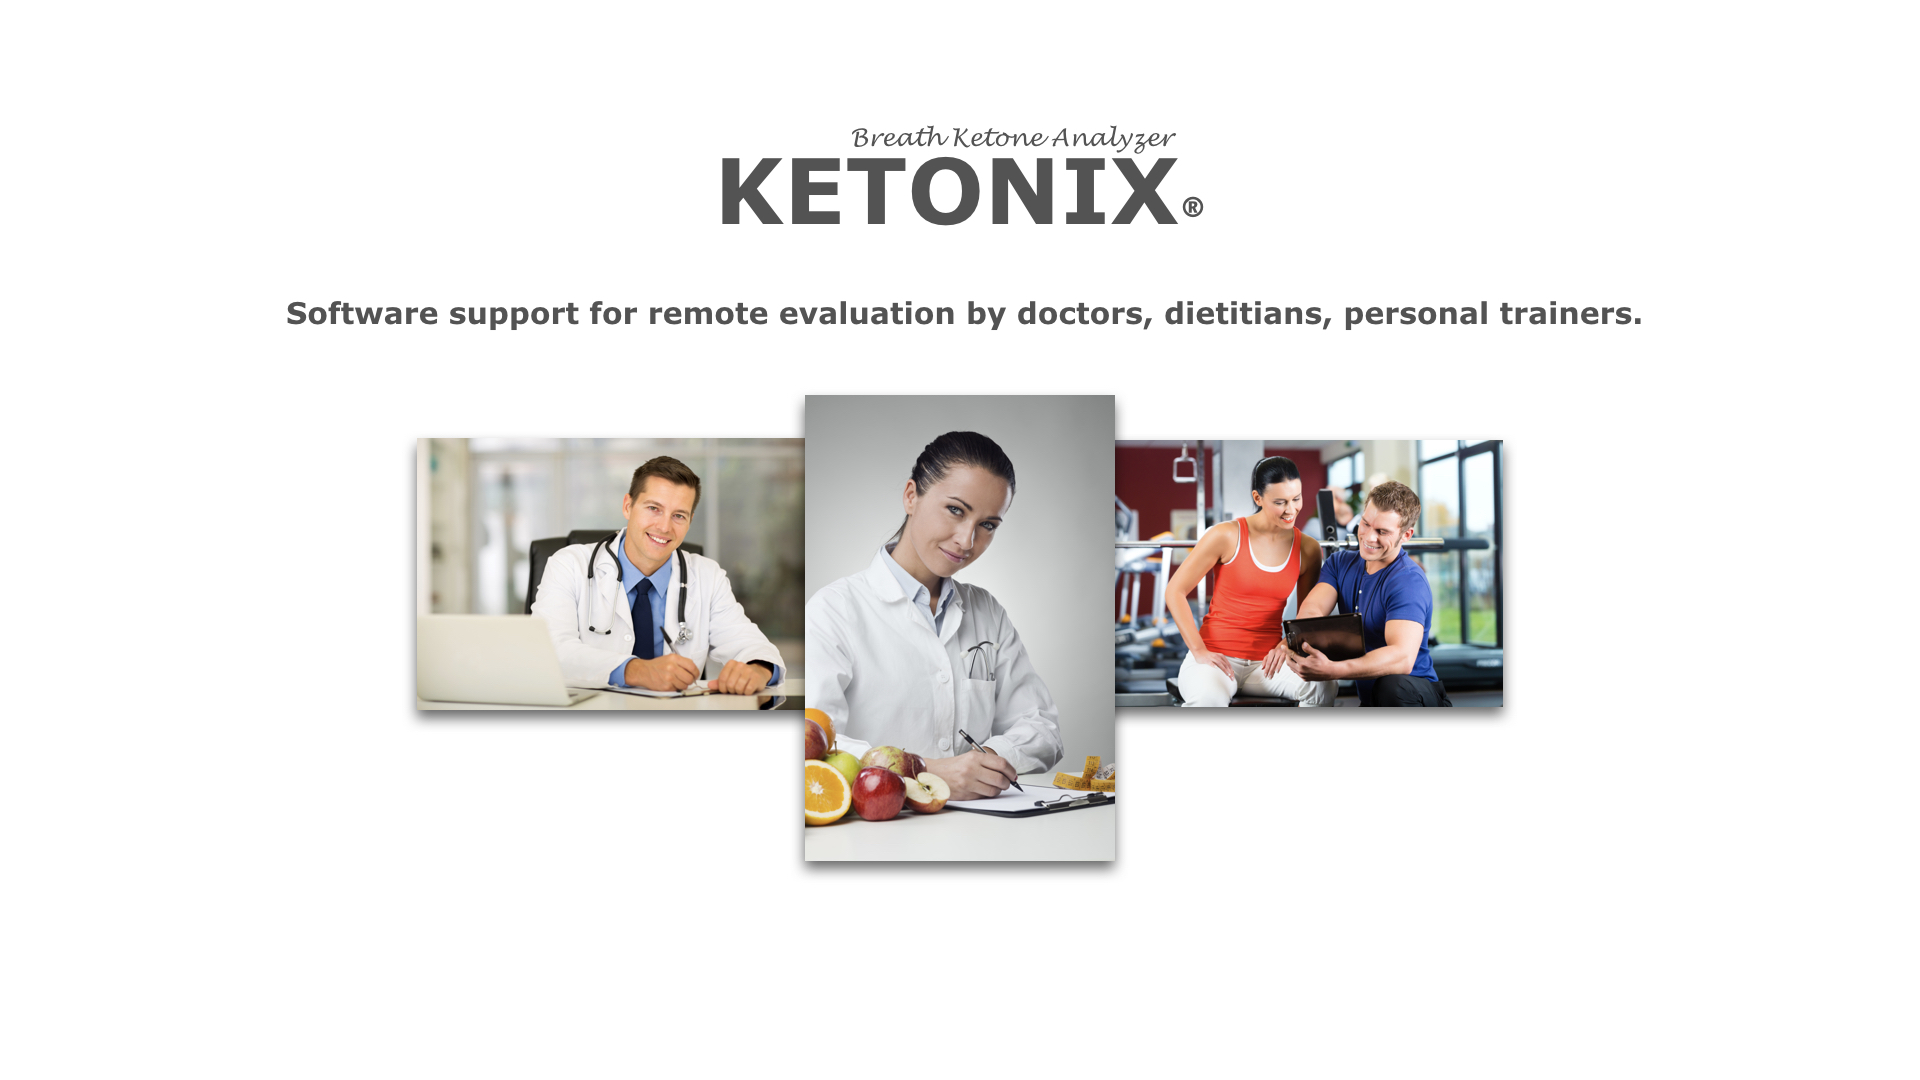 KETONIX® Breath Ketone AnalyzerTONIX® Breath Ketone Analyzer